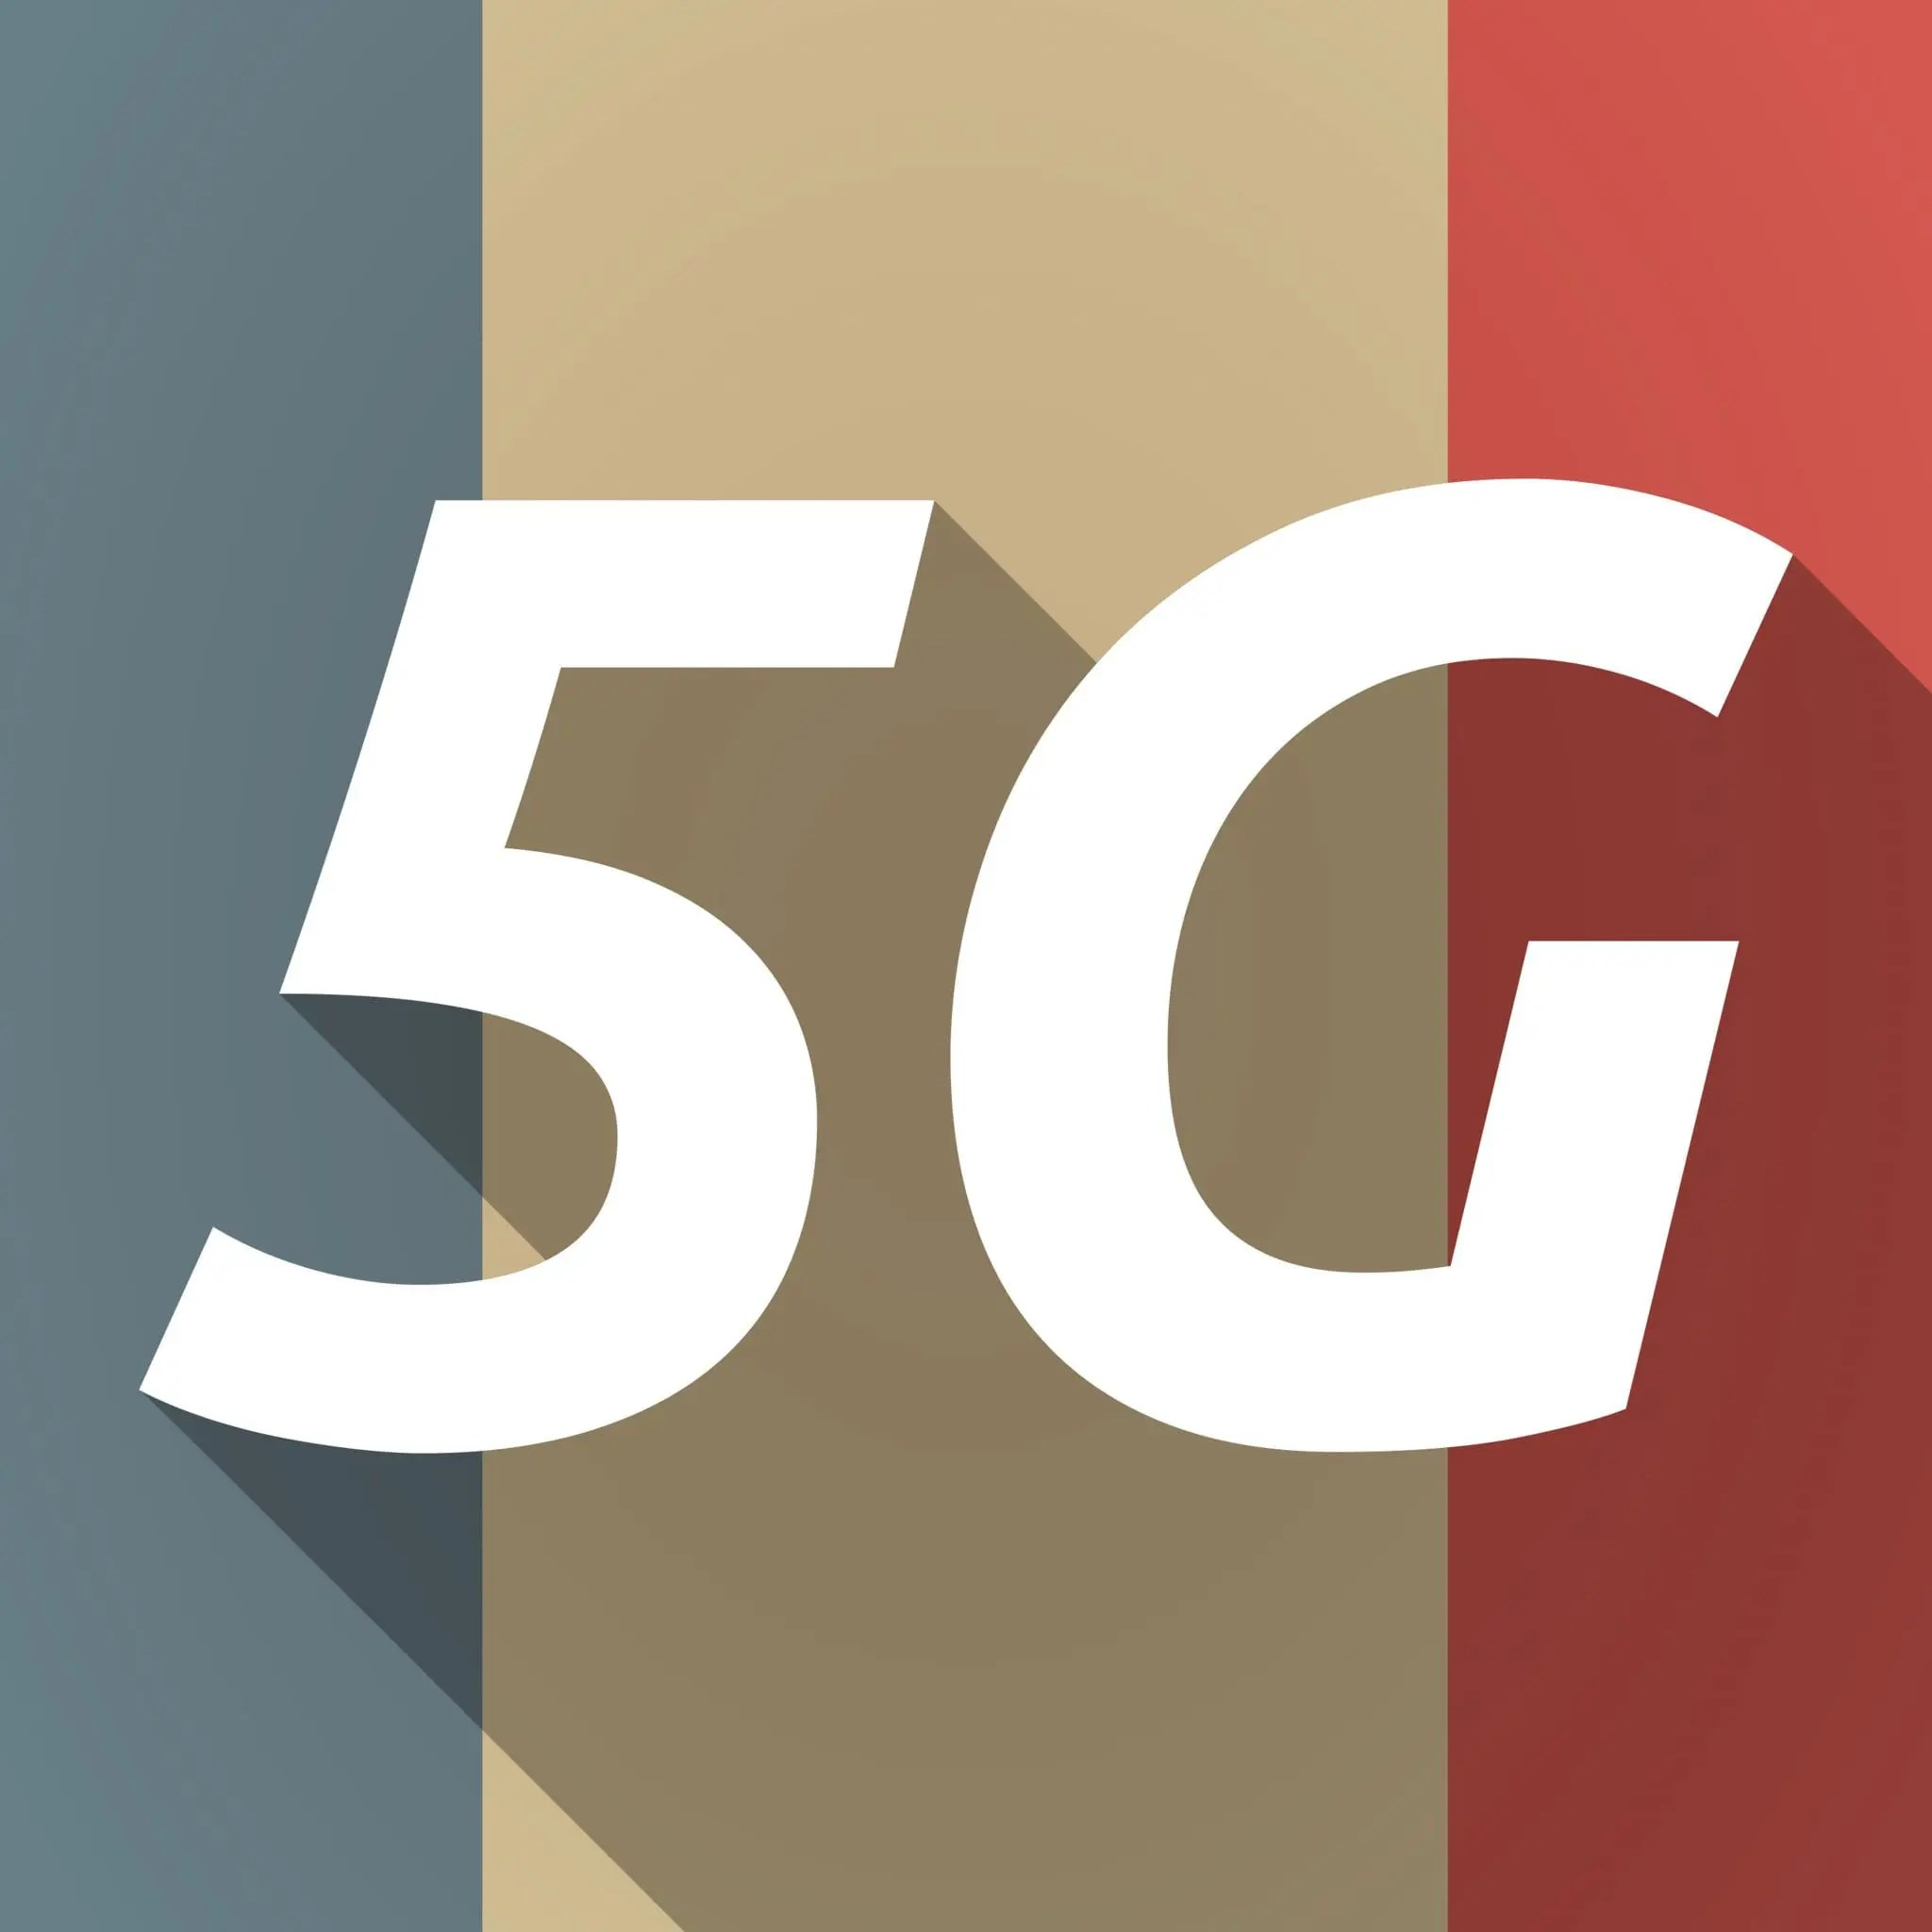 Sfr Velizy Altice Reaches Speeds Of 2 3gbps In 5g Test In Paris